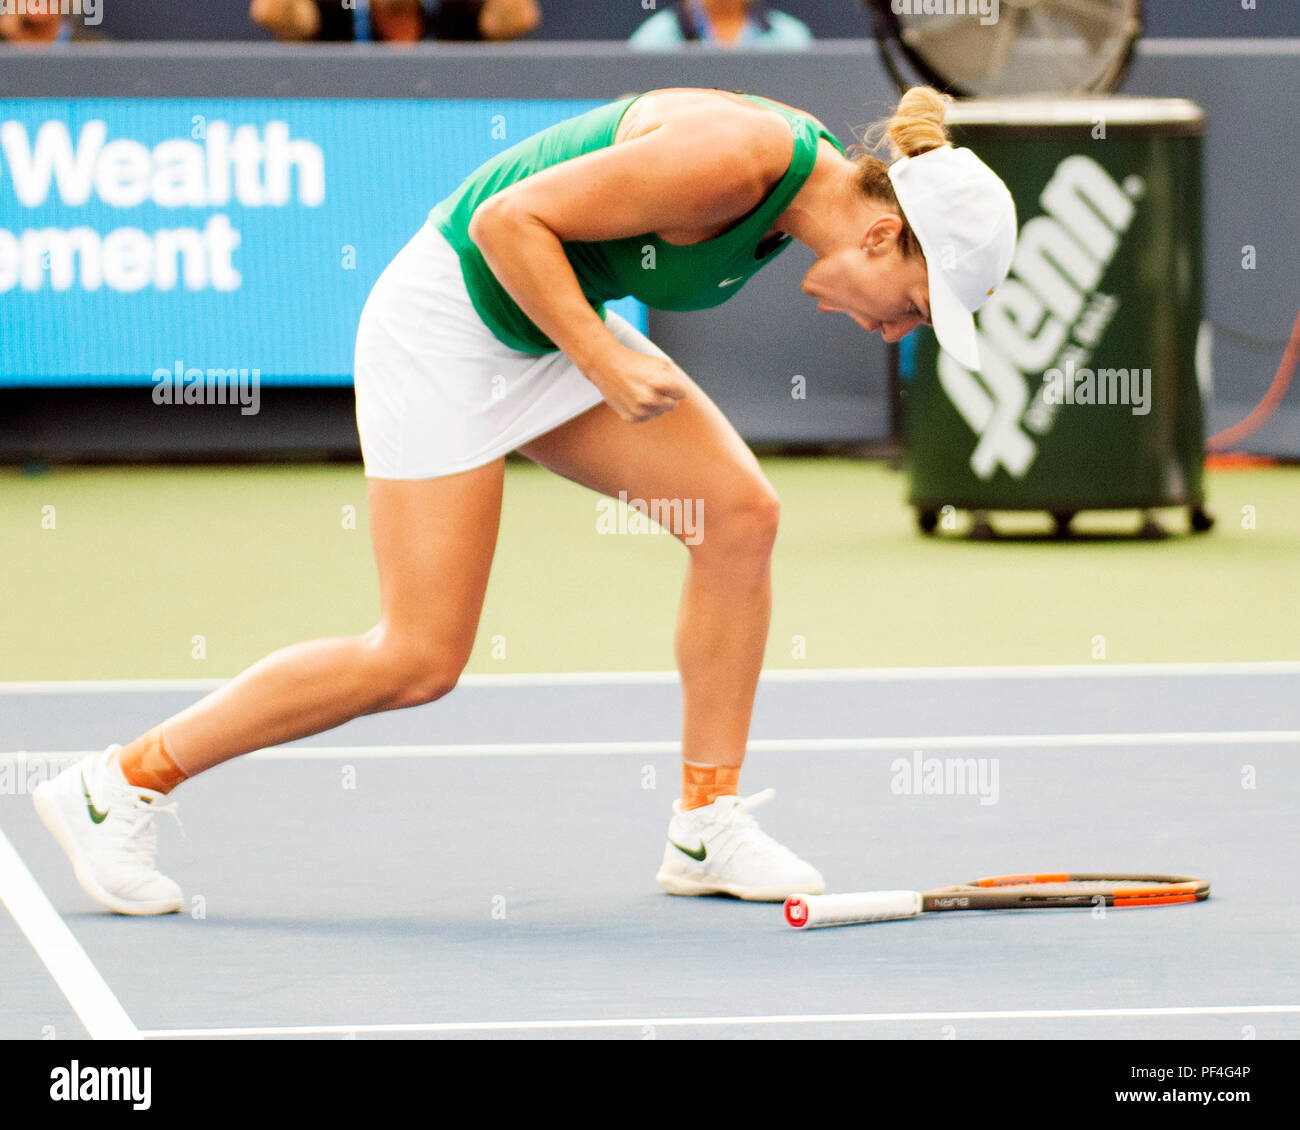 Ohio, USA. 18 August 2018.   Simona Halep (ROU) celebrates her victory against Aryna Sabalenka (BLR) at the Western Southern Open in Mason, Ohio, USA. Brent Clark/Alamy Live News - Stock Image